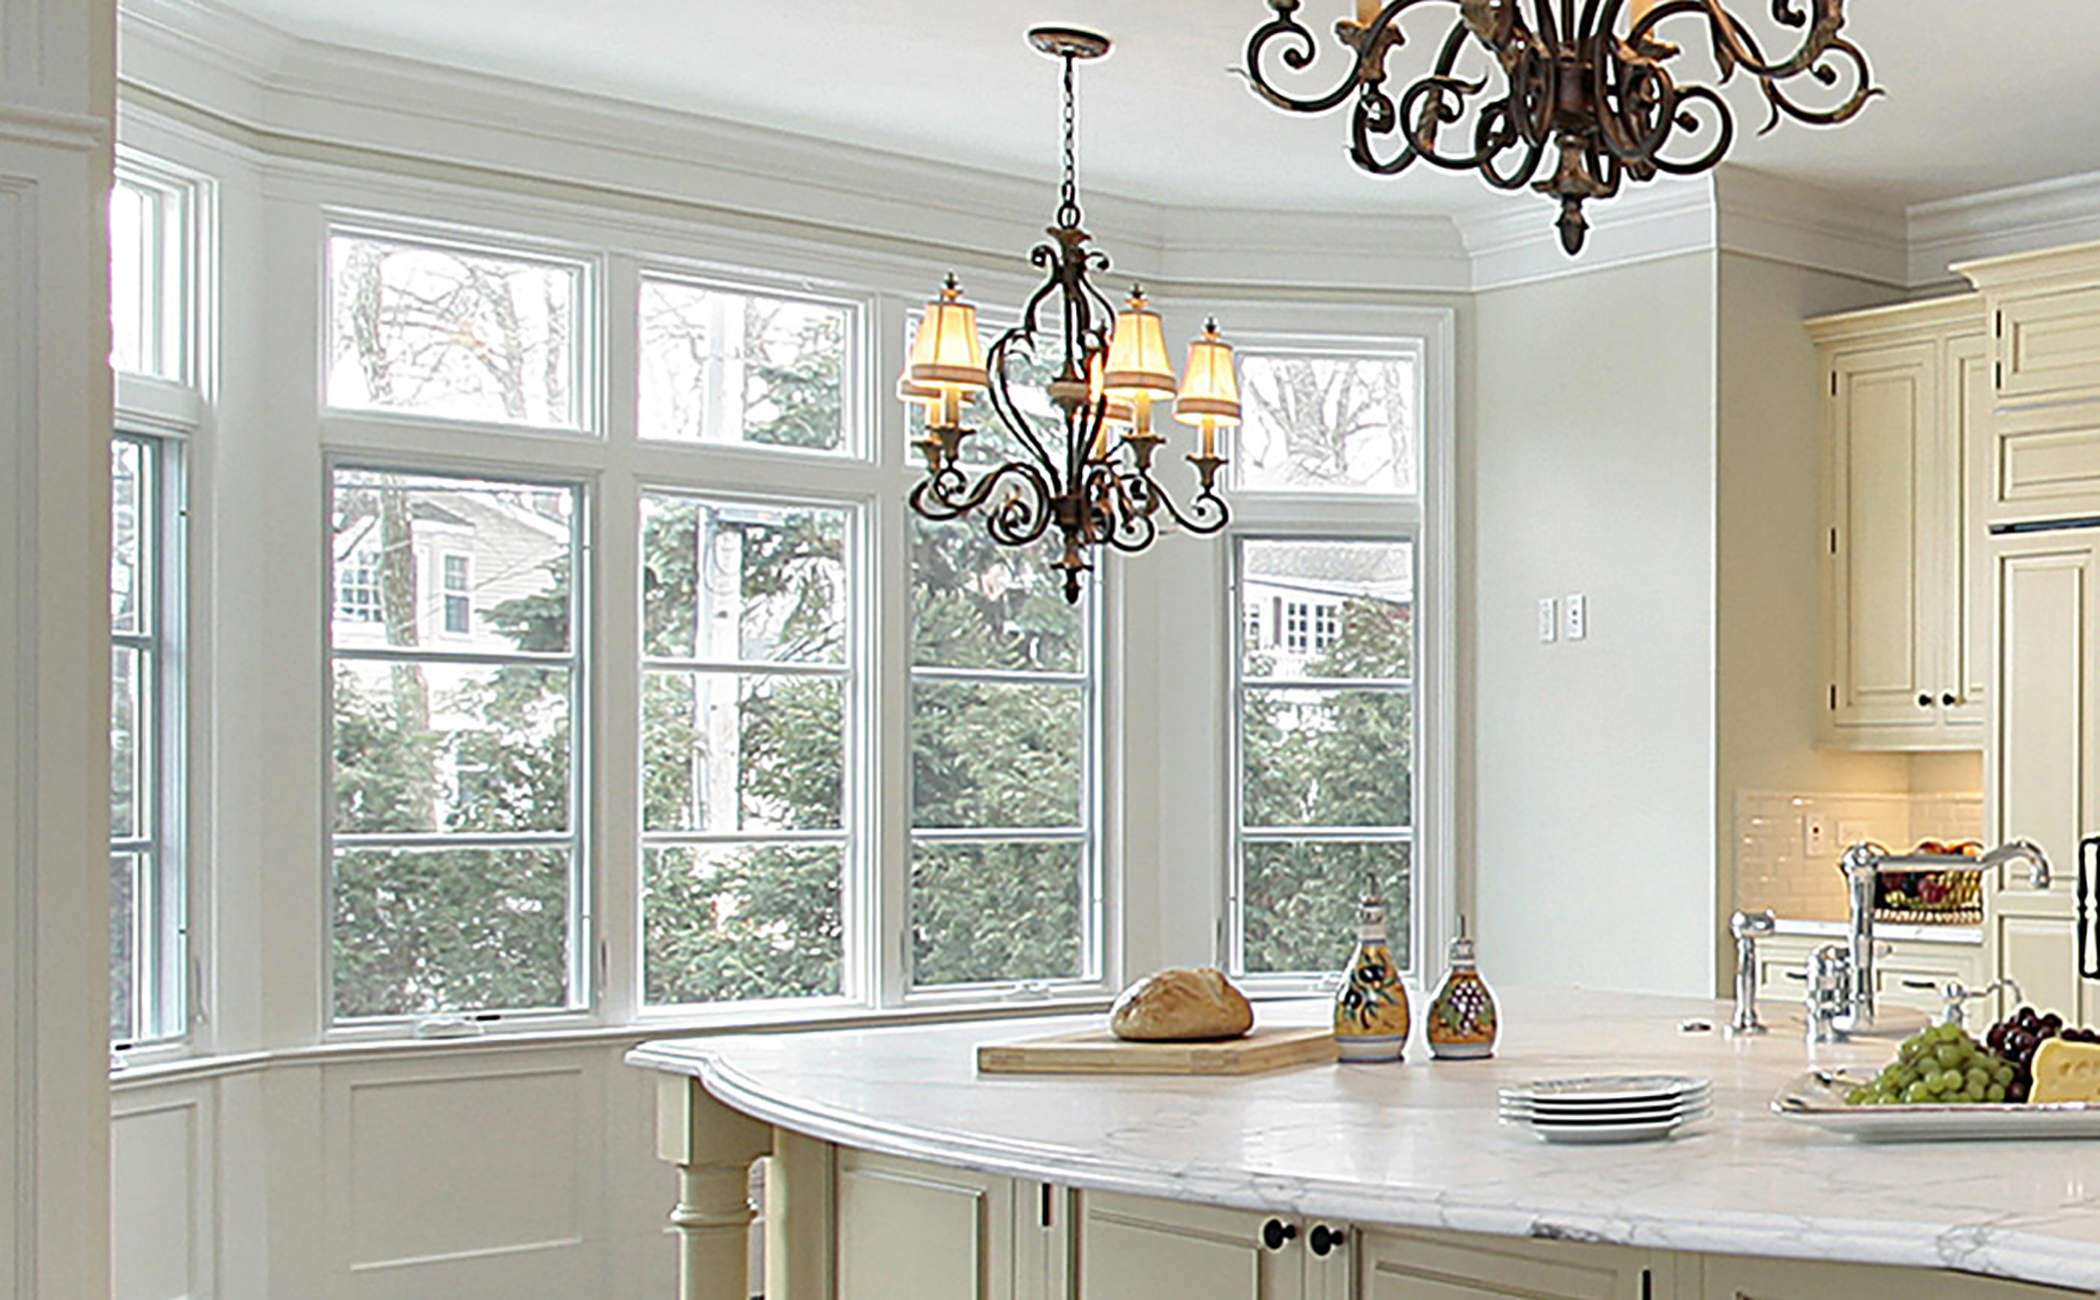 White kitchen with chandelier and bay/bow window